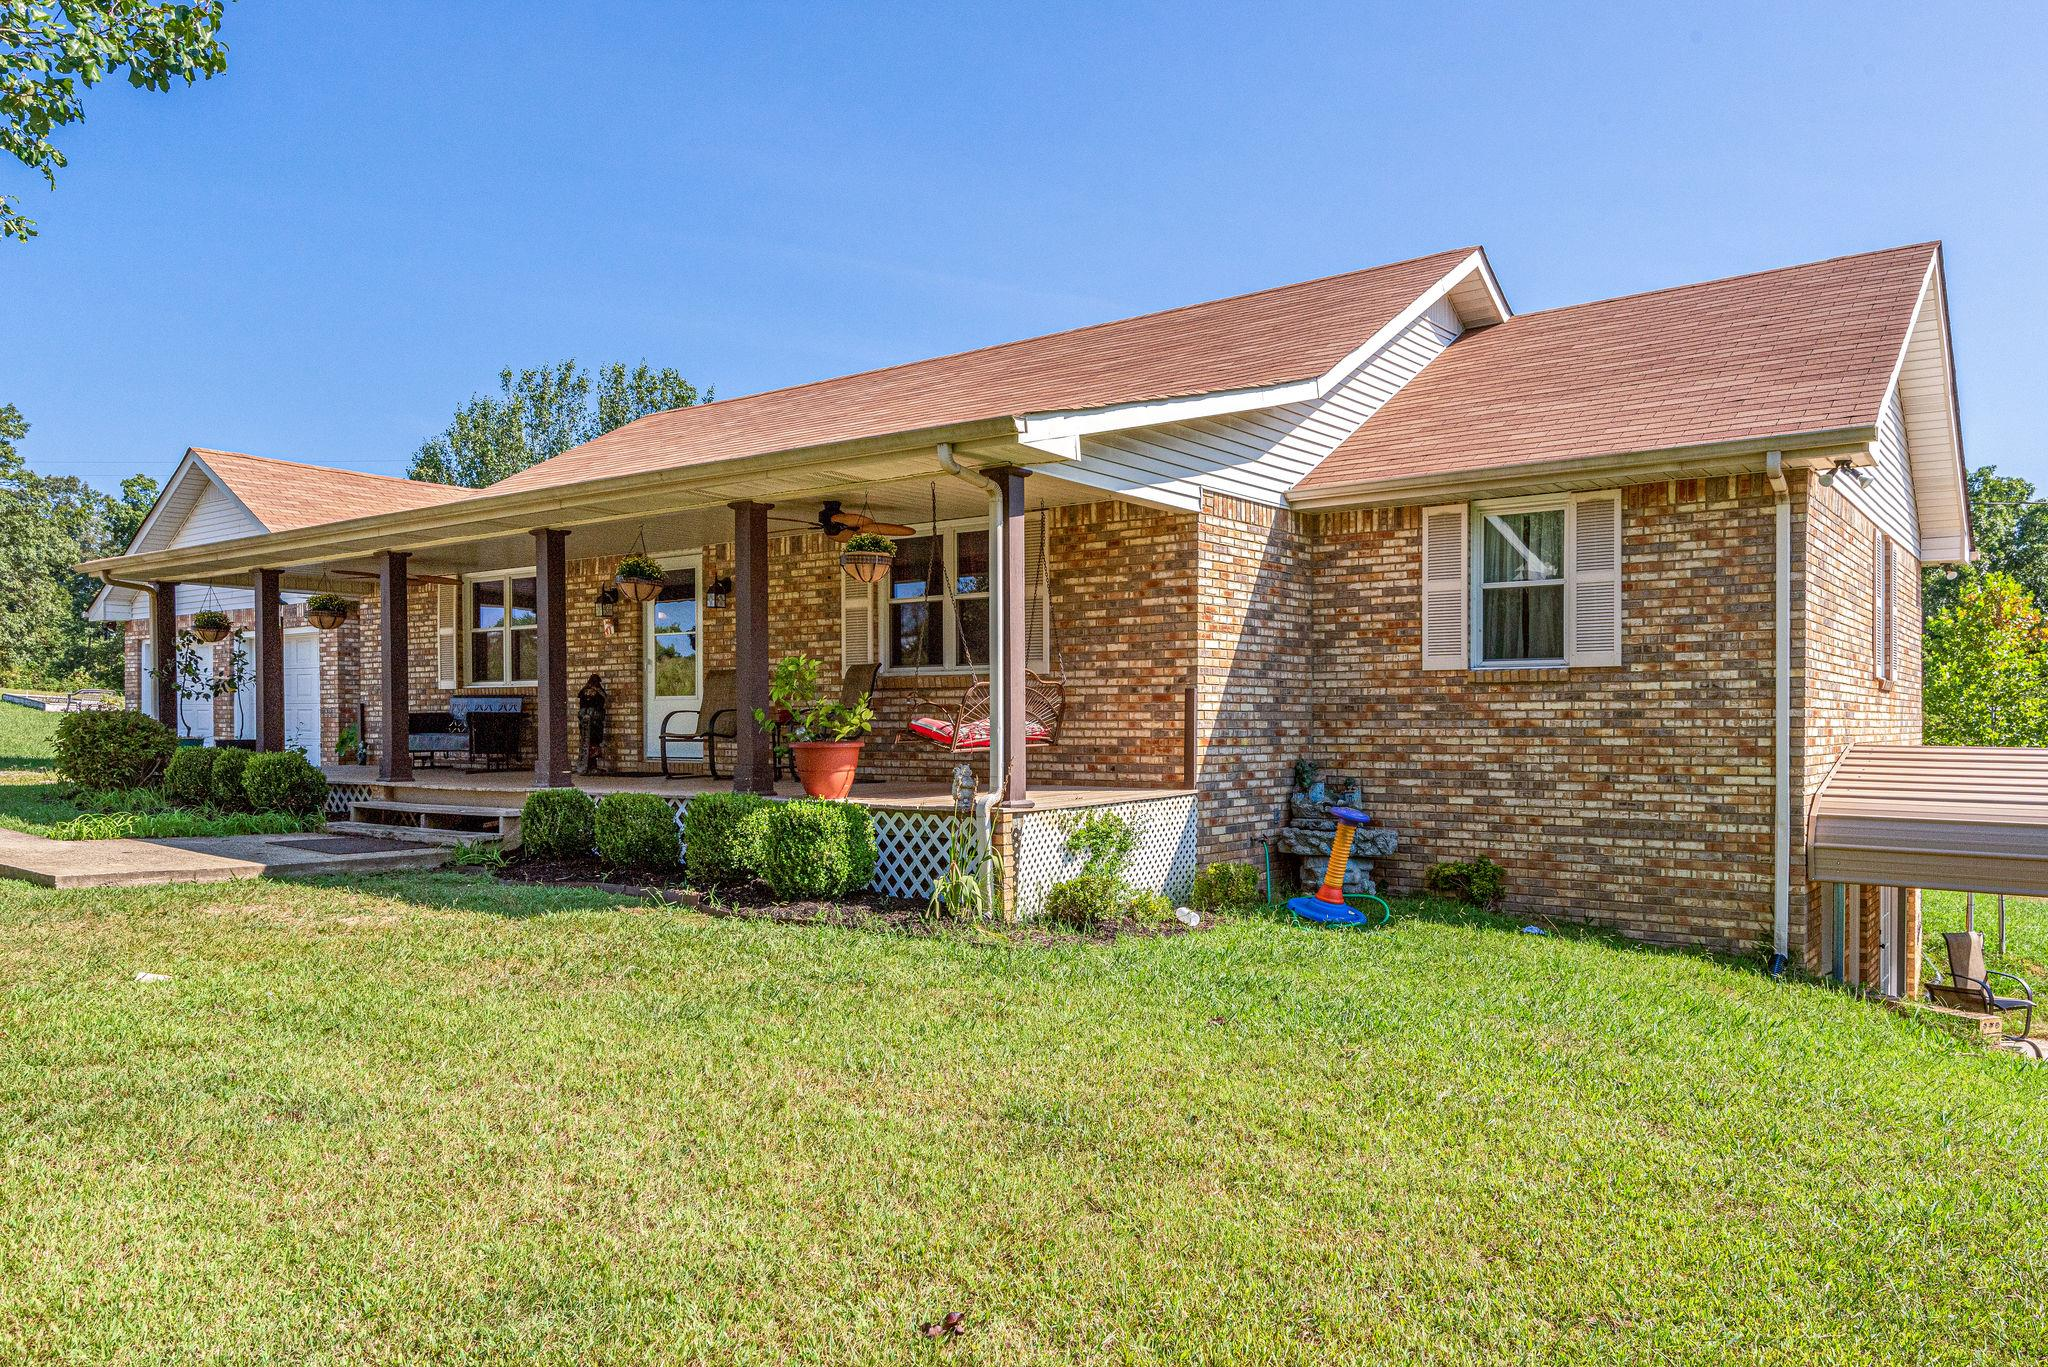 799 Arnold Rd, White Bluff, TN 37187 - White Bluff, TN real estate listing